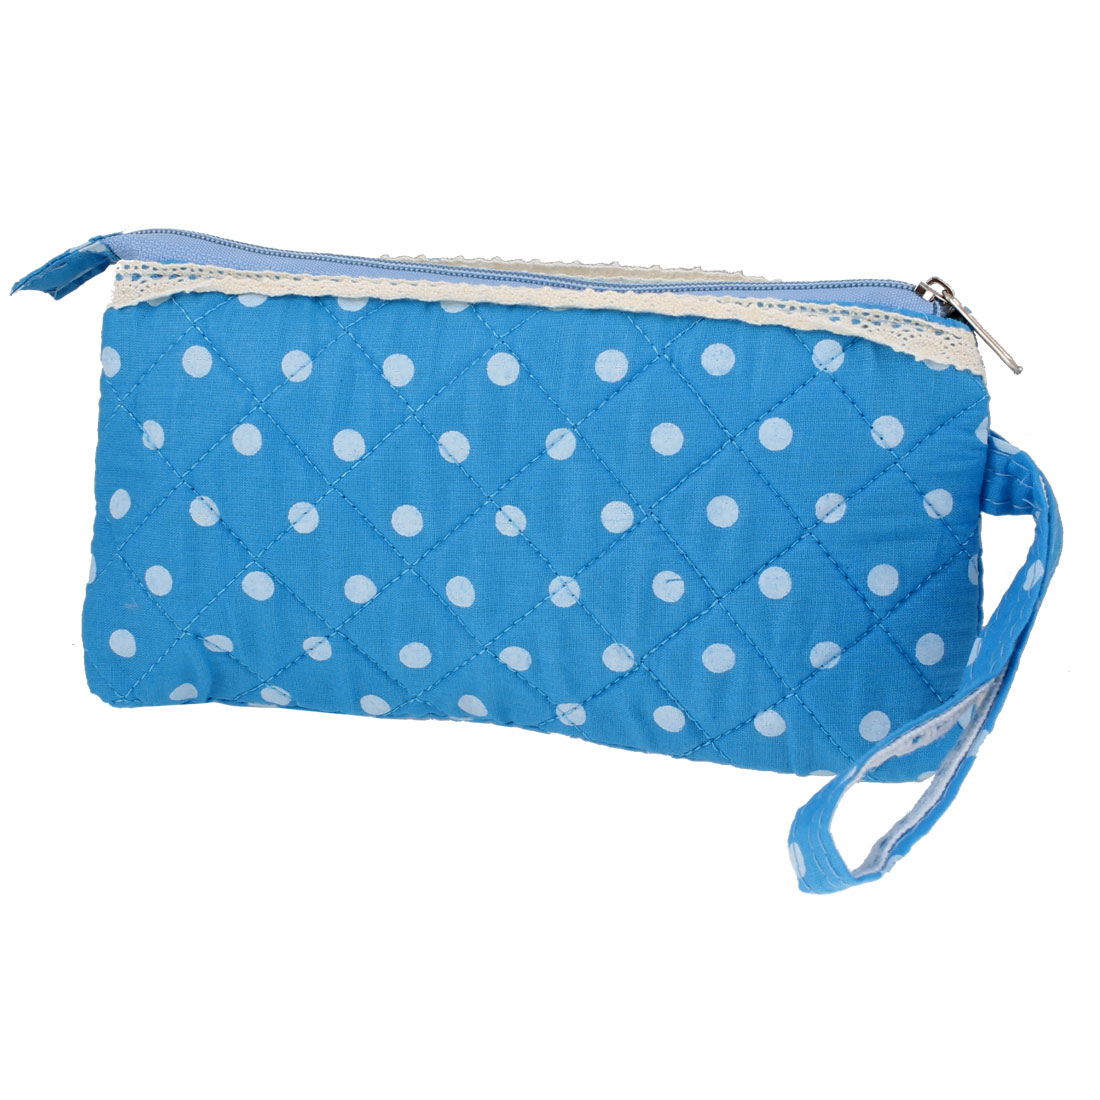 "7.3"" Length White Dotted Blue Zip Up Purse Bag w Wrist String for Women"